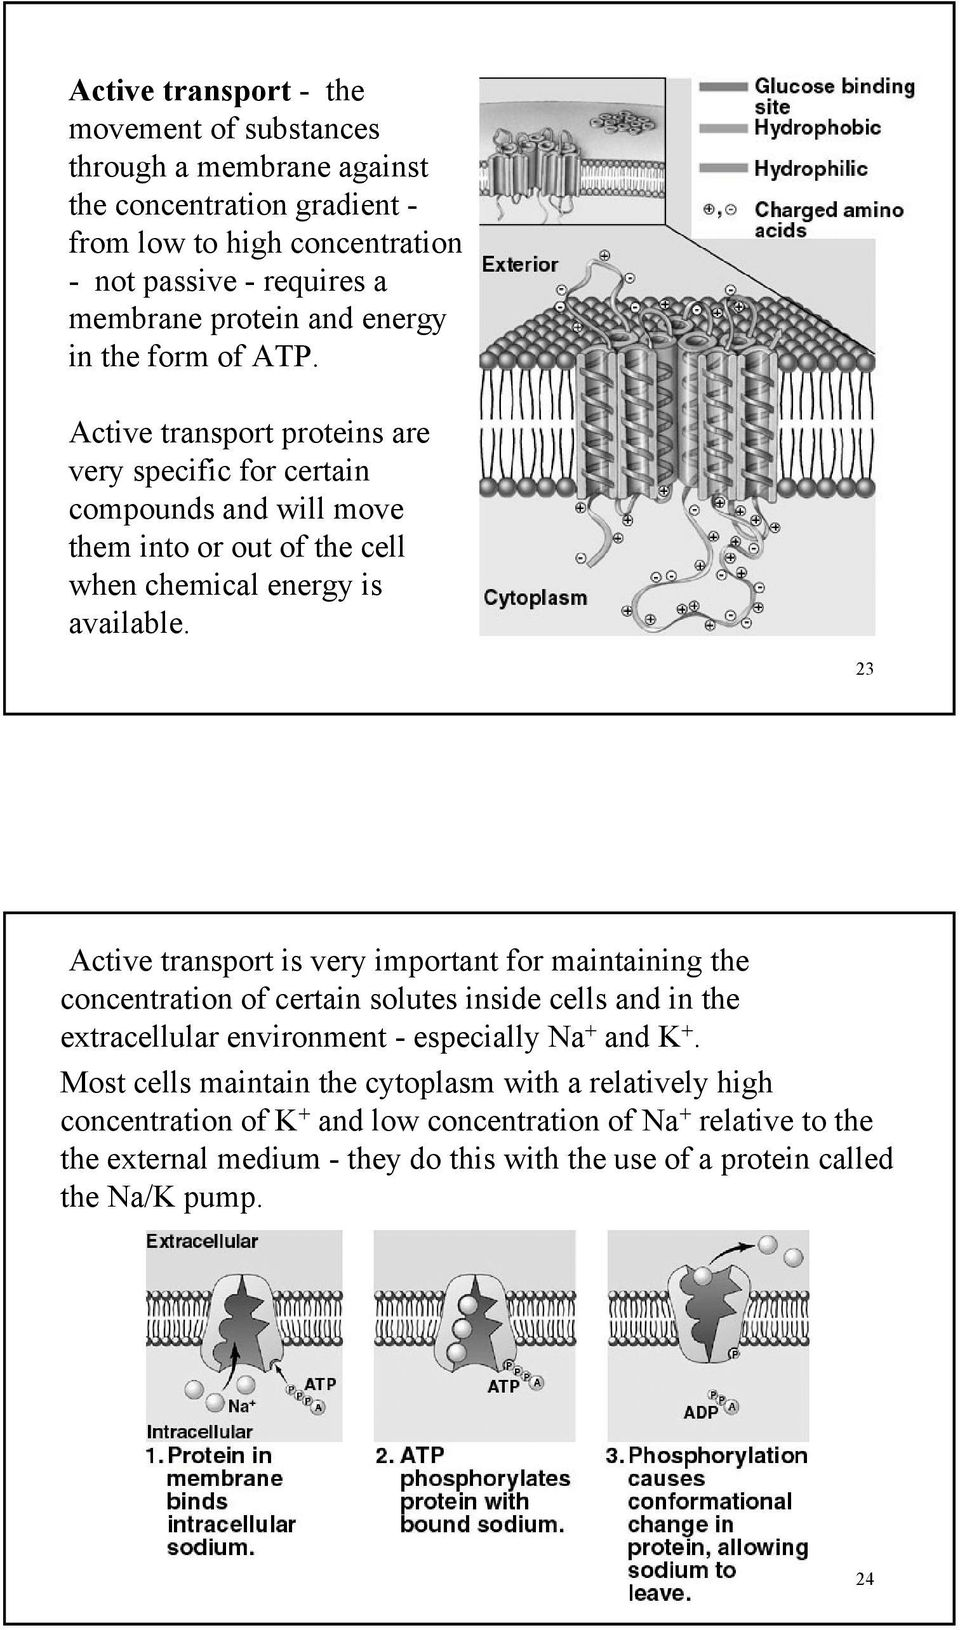 23 Active transport is very important for maintaining the concentration of certain solutes inside cells and in the extracellular environment - especially Na + and K +.